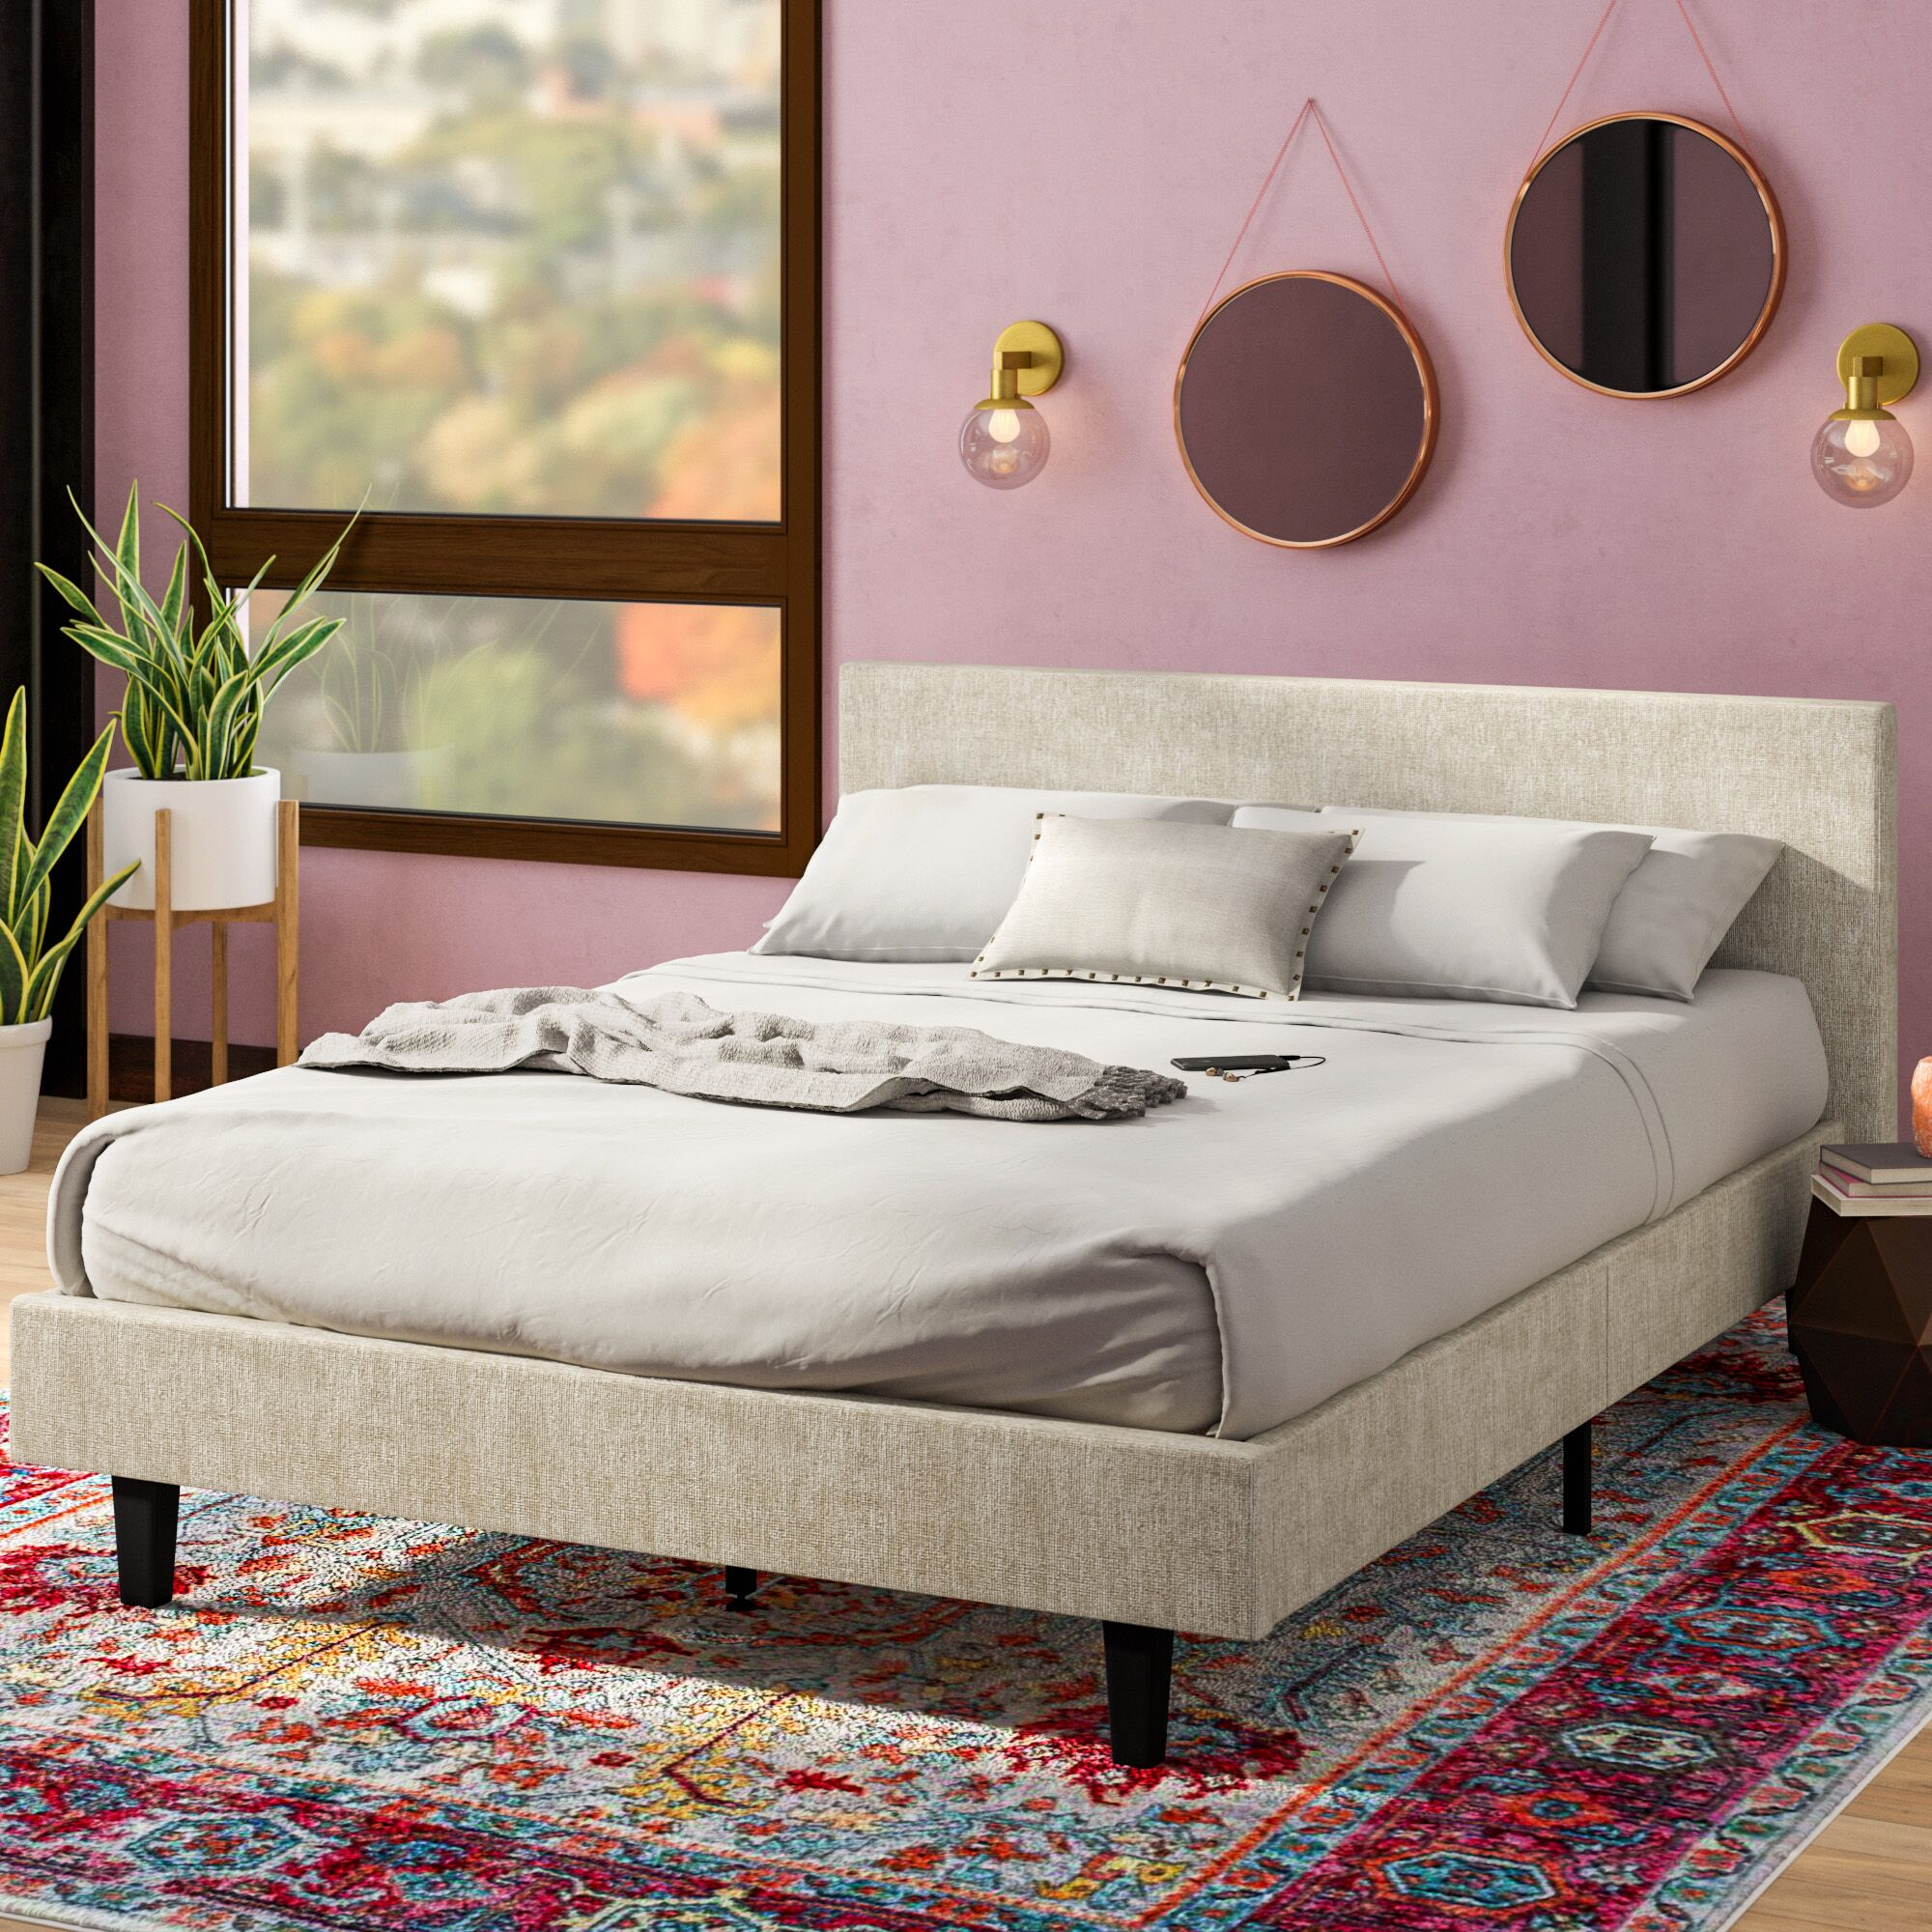 Tafolla Bed Frame Size: Twin, Color: Beige